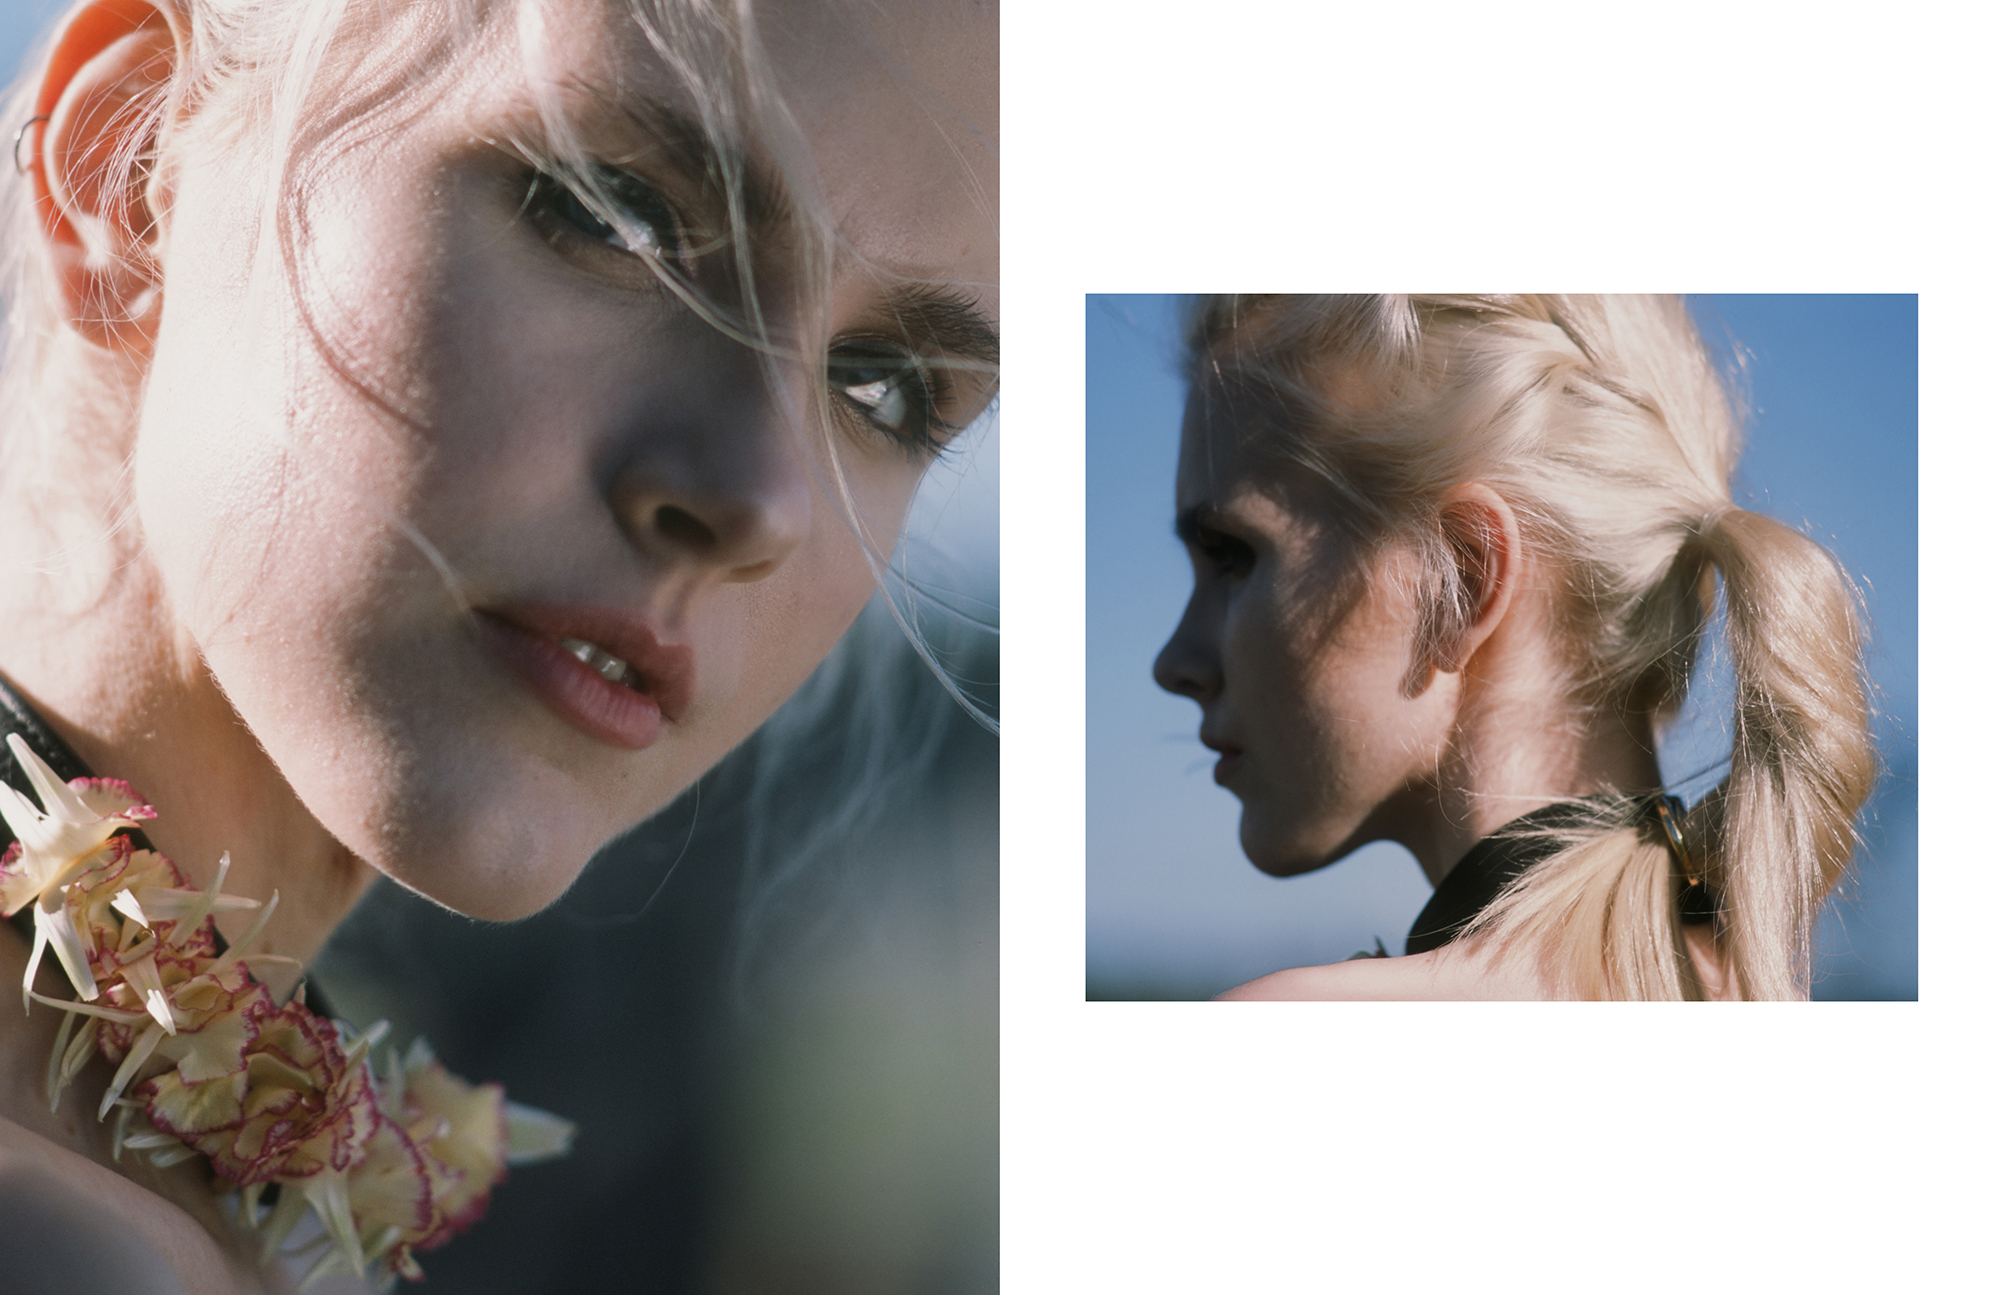 Gisele Pletzer wears The Model Traitor by Sian Hoffman collar styled with live flowers IN ABSENTIA by Aaron VIII